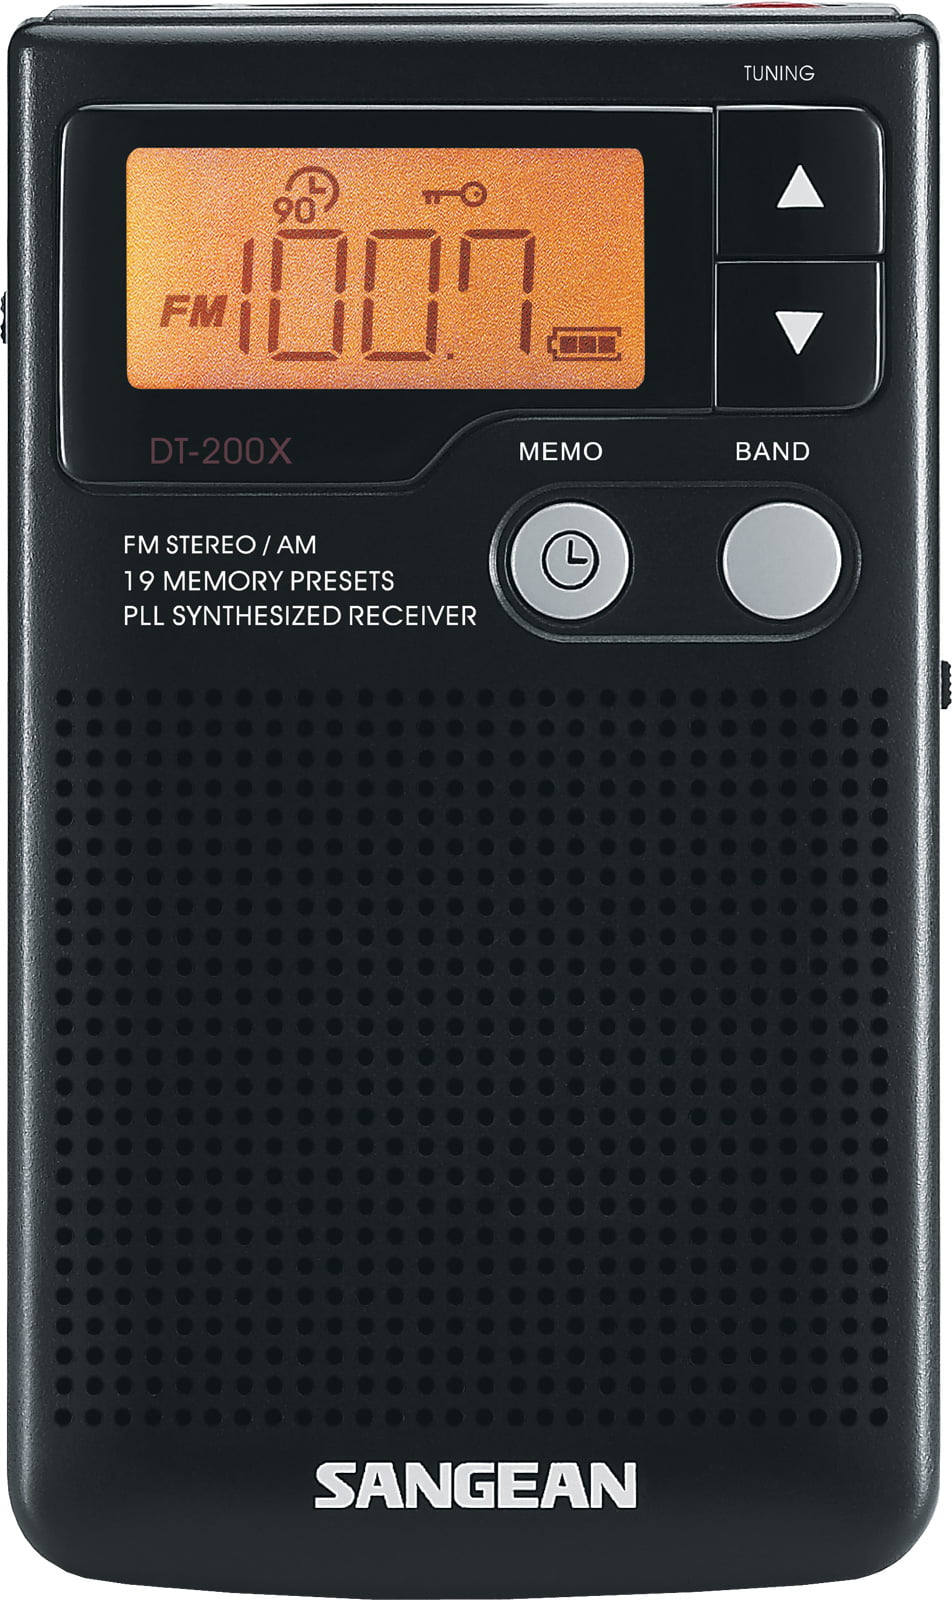 Sangean Compact Digital Tuning Pocket Size Portable AM FM Radio with Built-in Speaker by Sangean